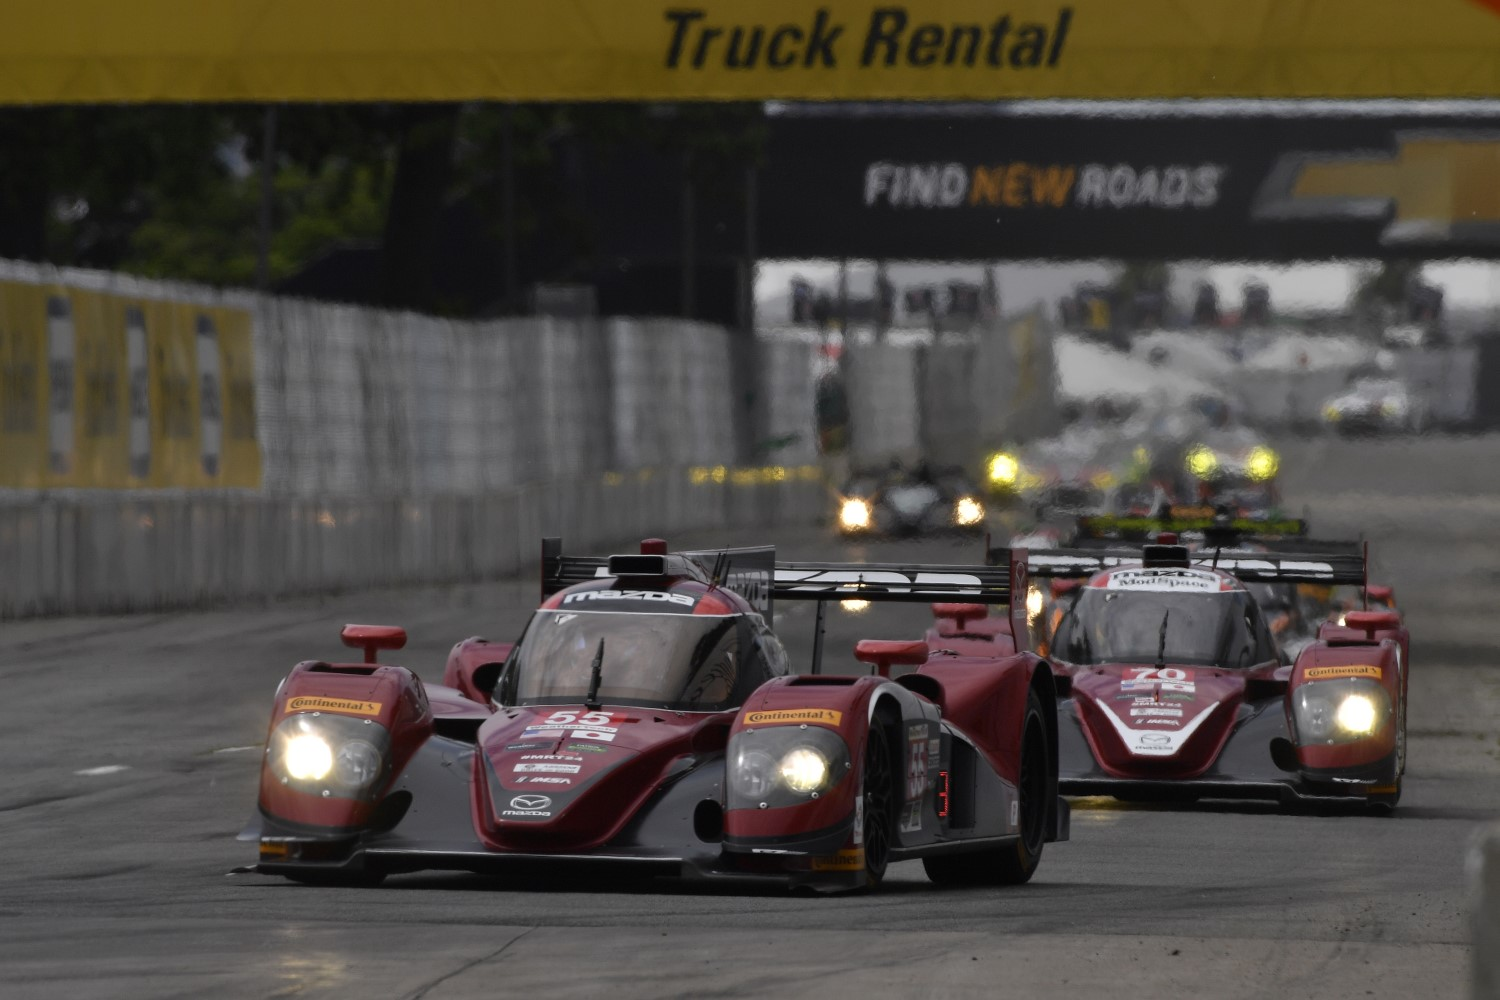 The Mazda Prototypes were winning so many races so they slowed them down. What a joke.